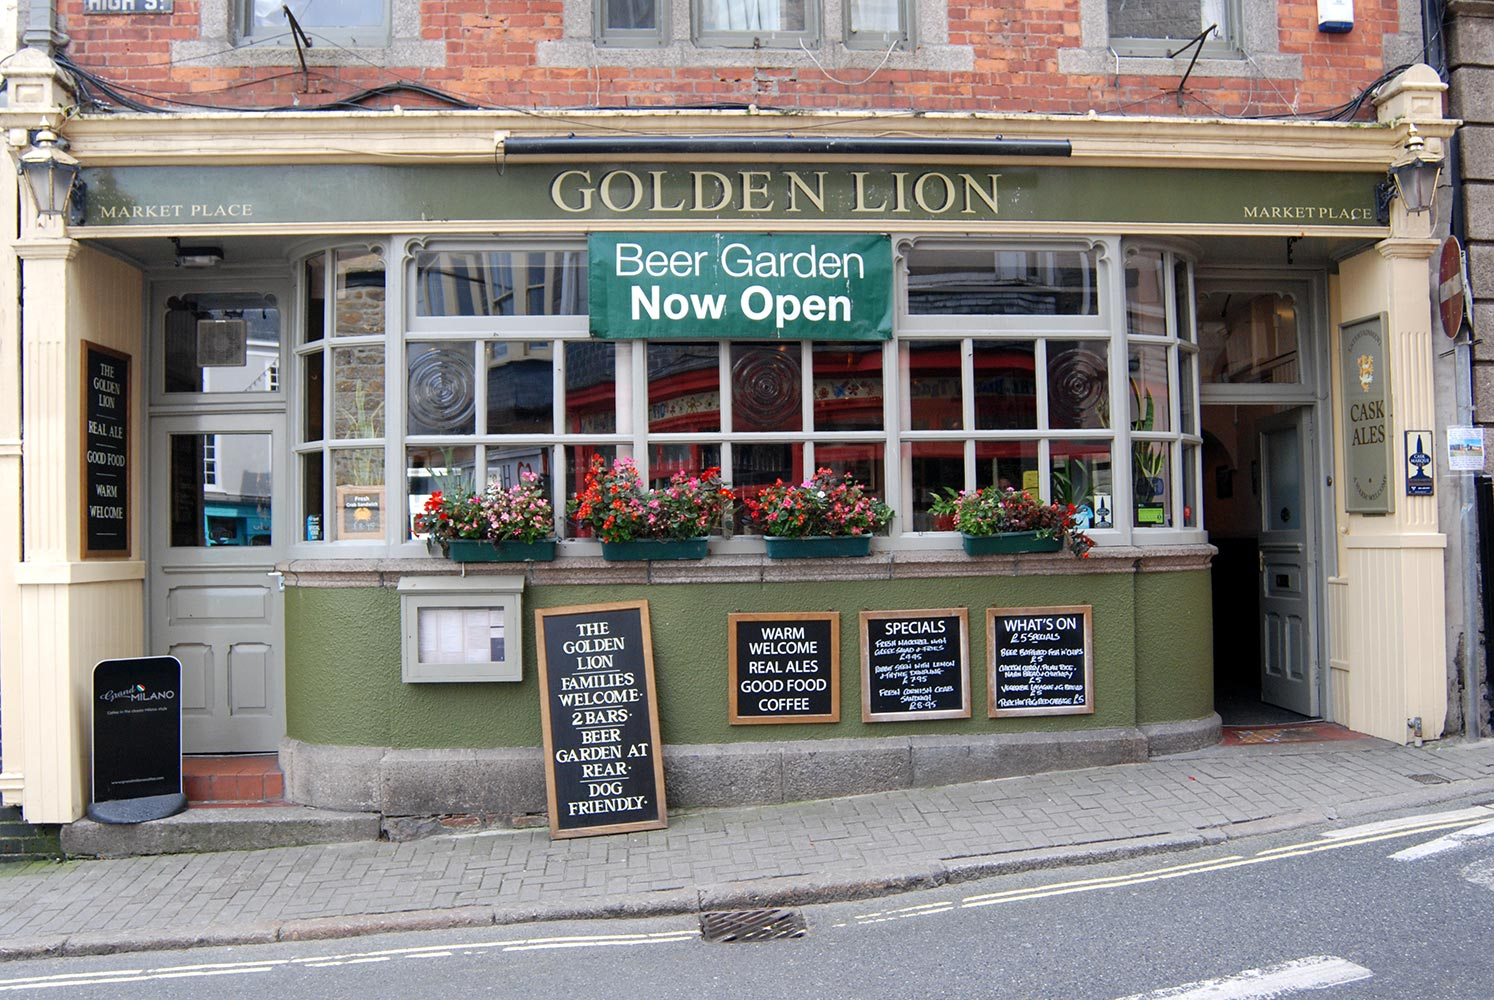 The Golden Lion Copy